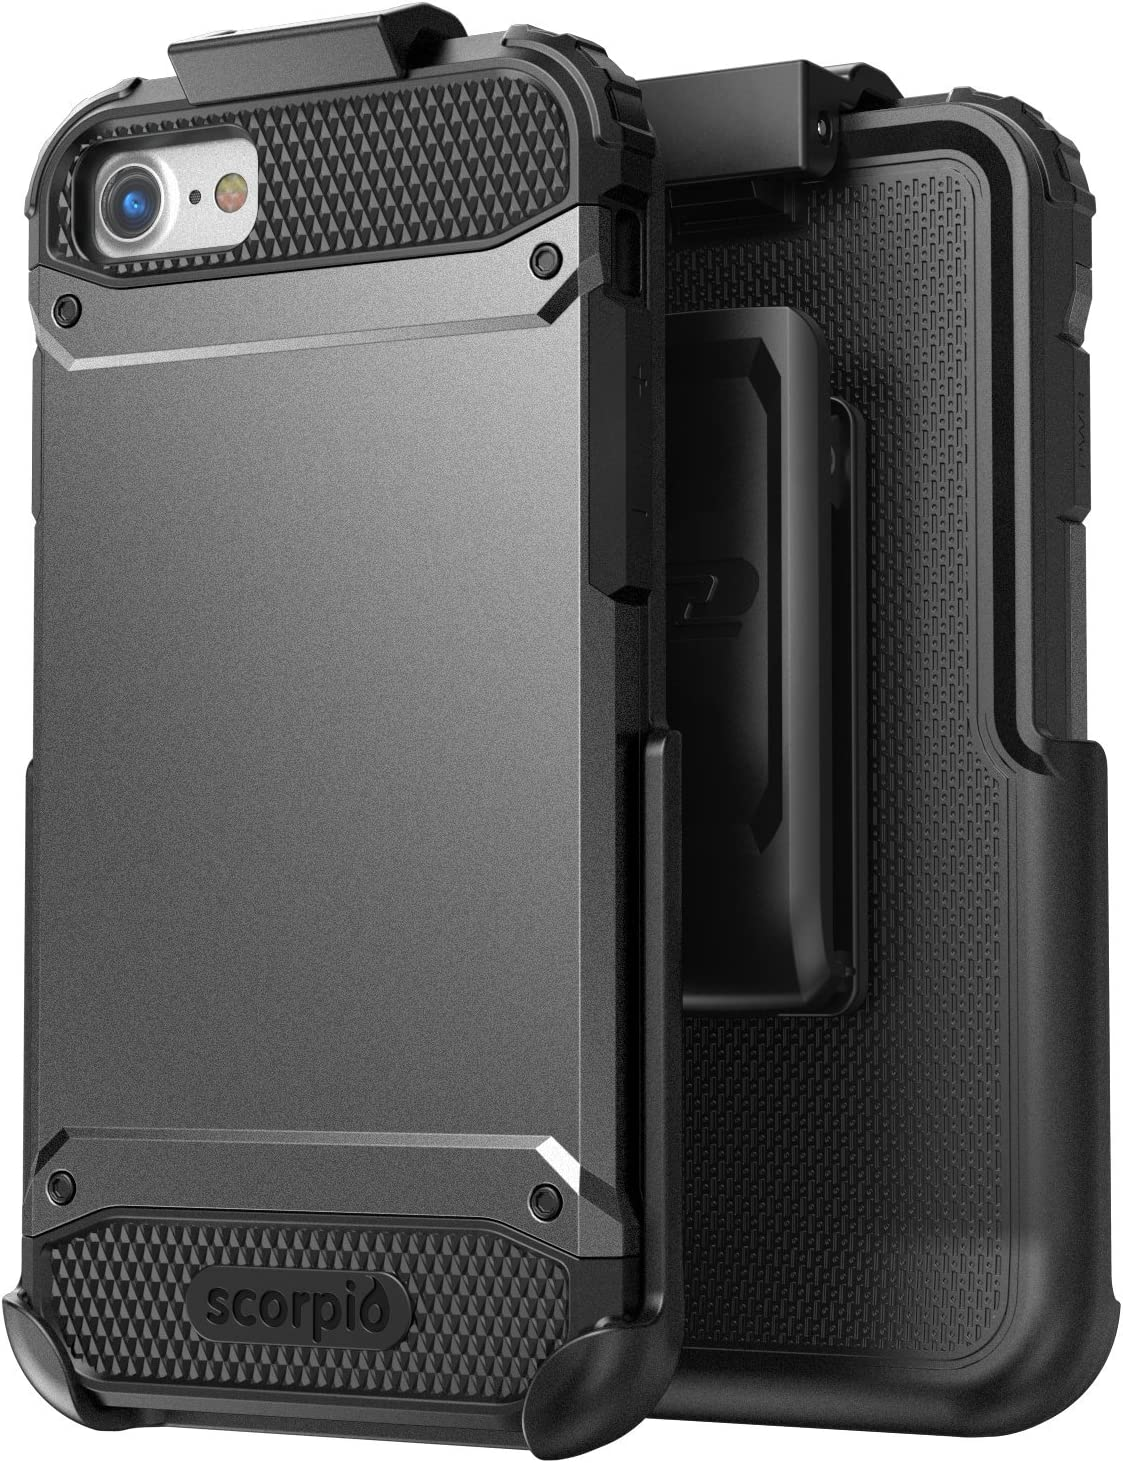 Encased Heavy Duty Belt Case Compatible with iPhone 7 (Black/Gray) Tough Full-Body Protective Cover with Holster Clip Combo (for Apple iPhone 7 Phone)